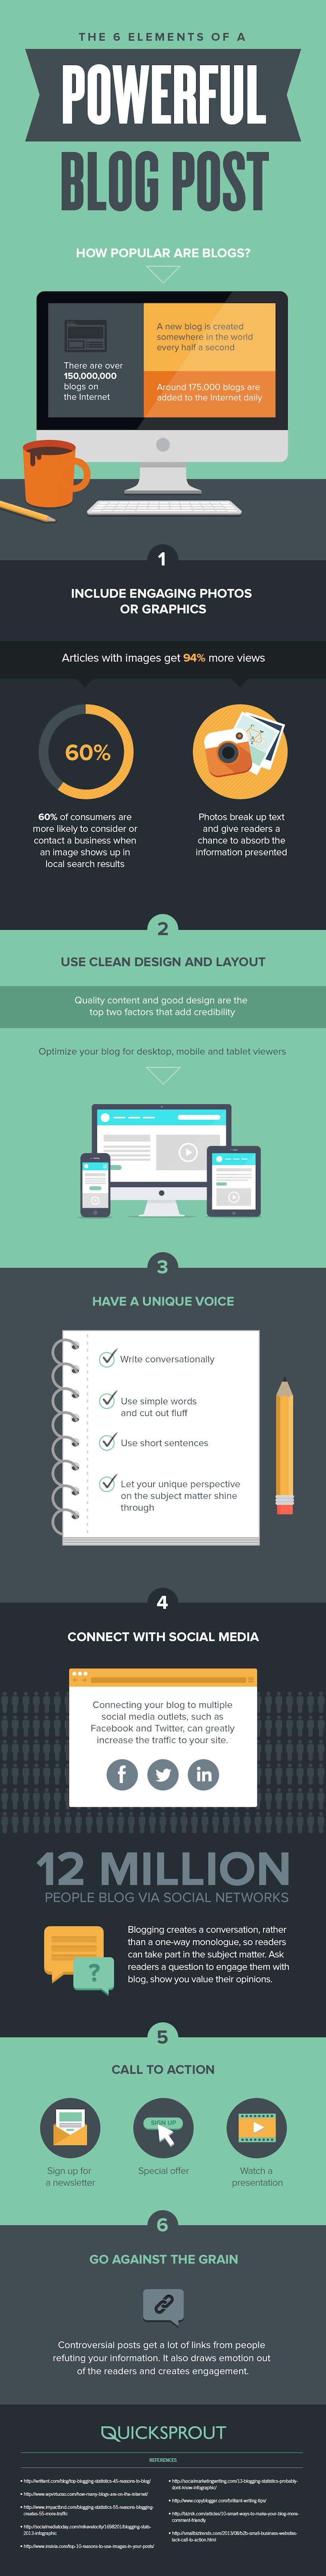 Infographic: The 6 Elements of a Powerful Blog Post #infographic